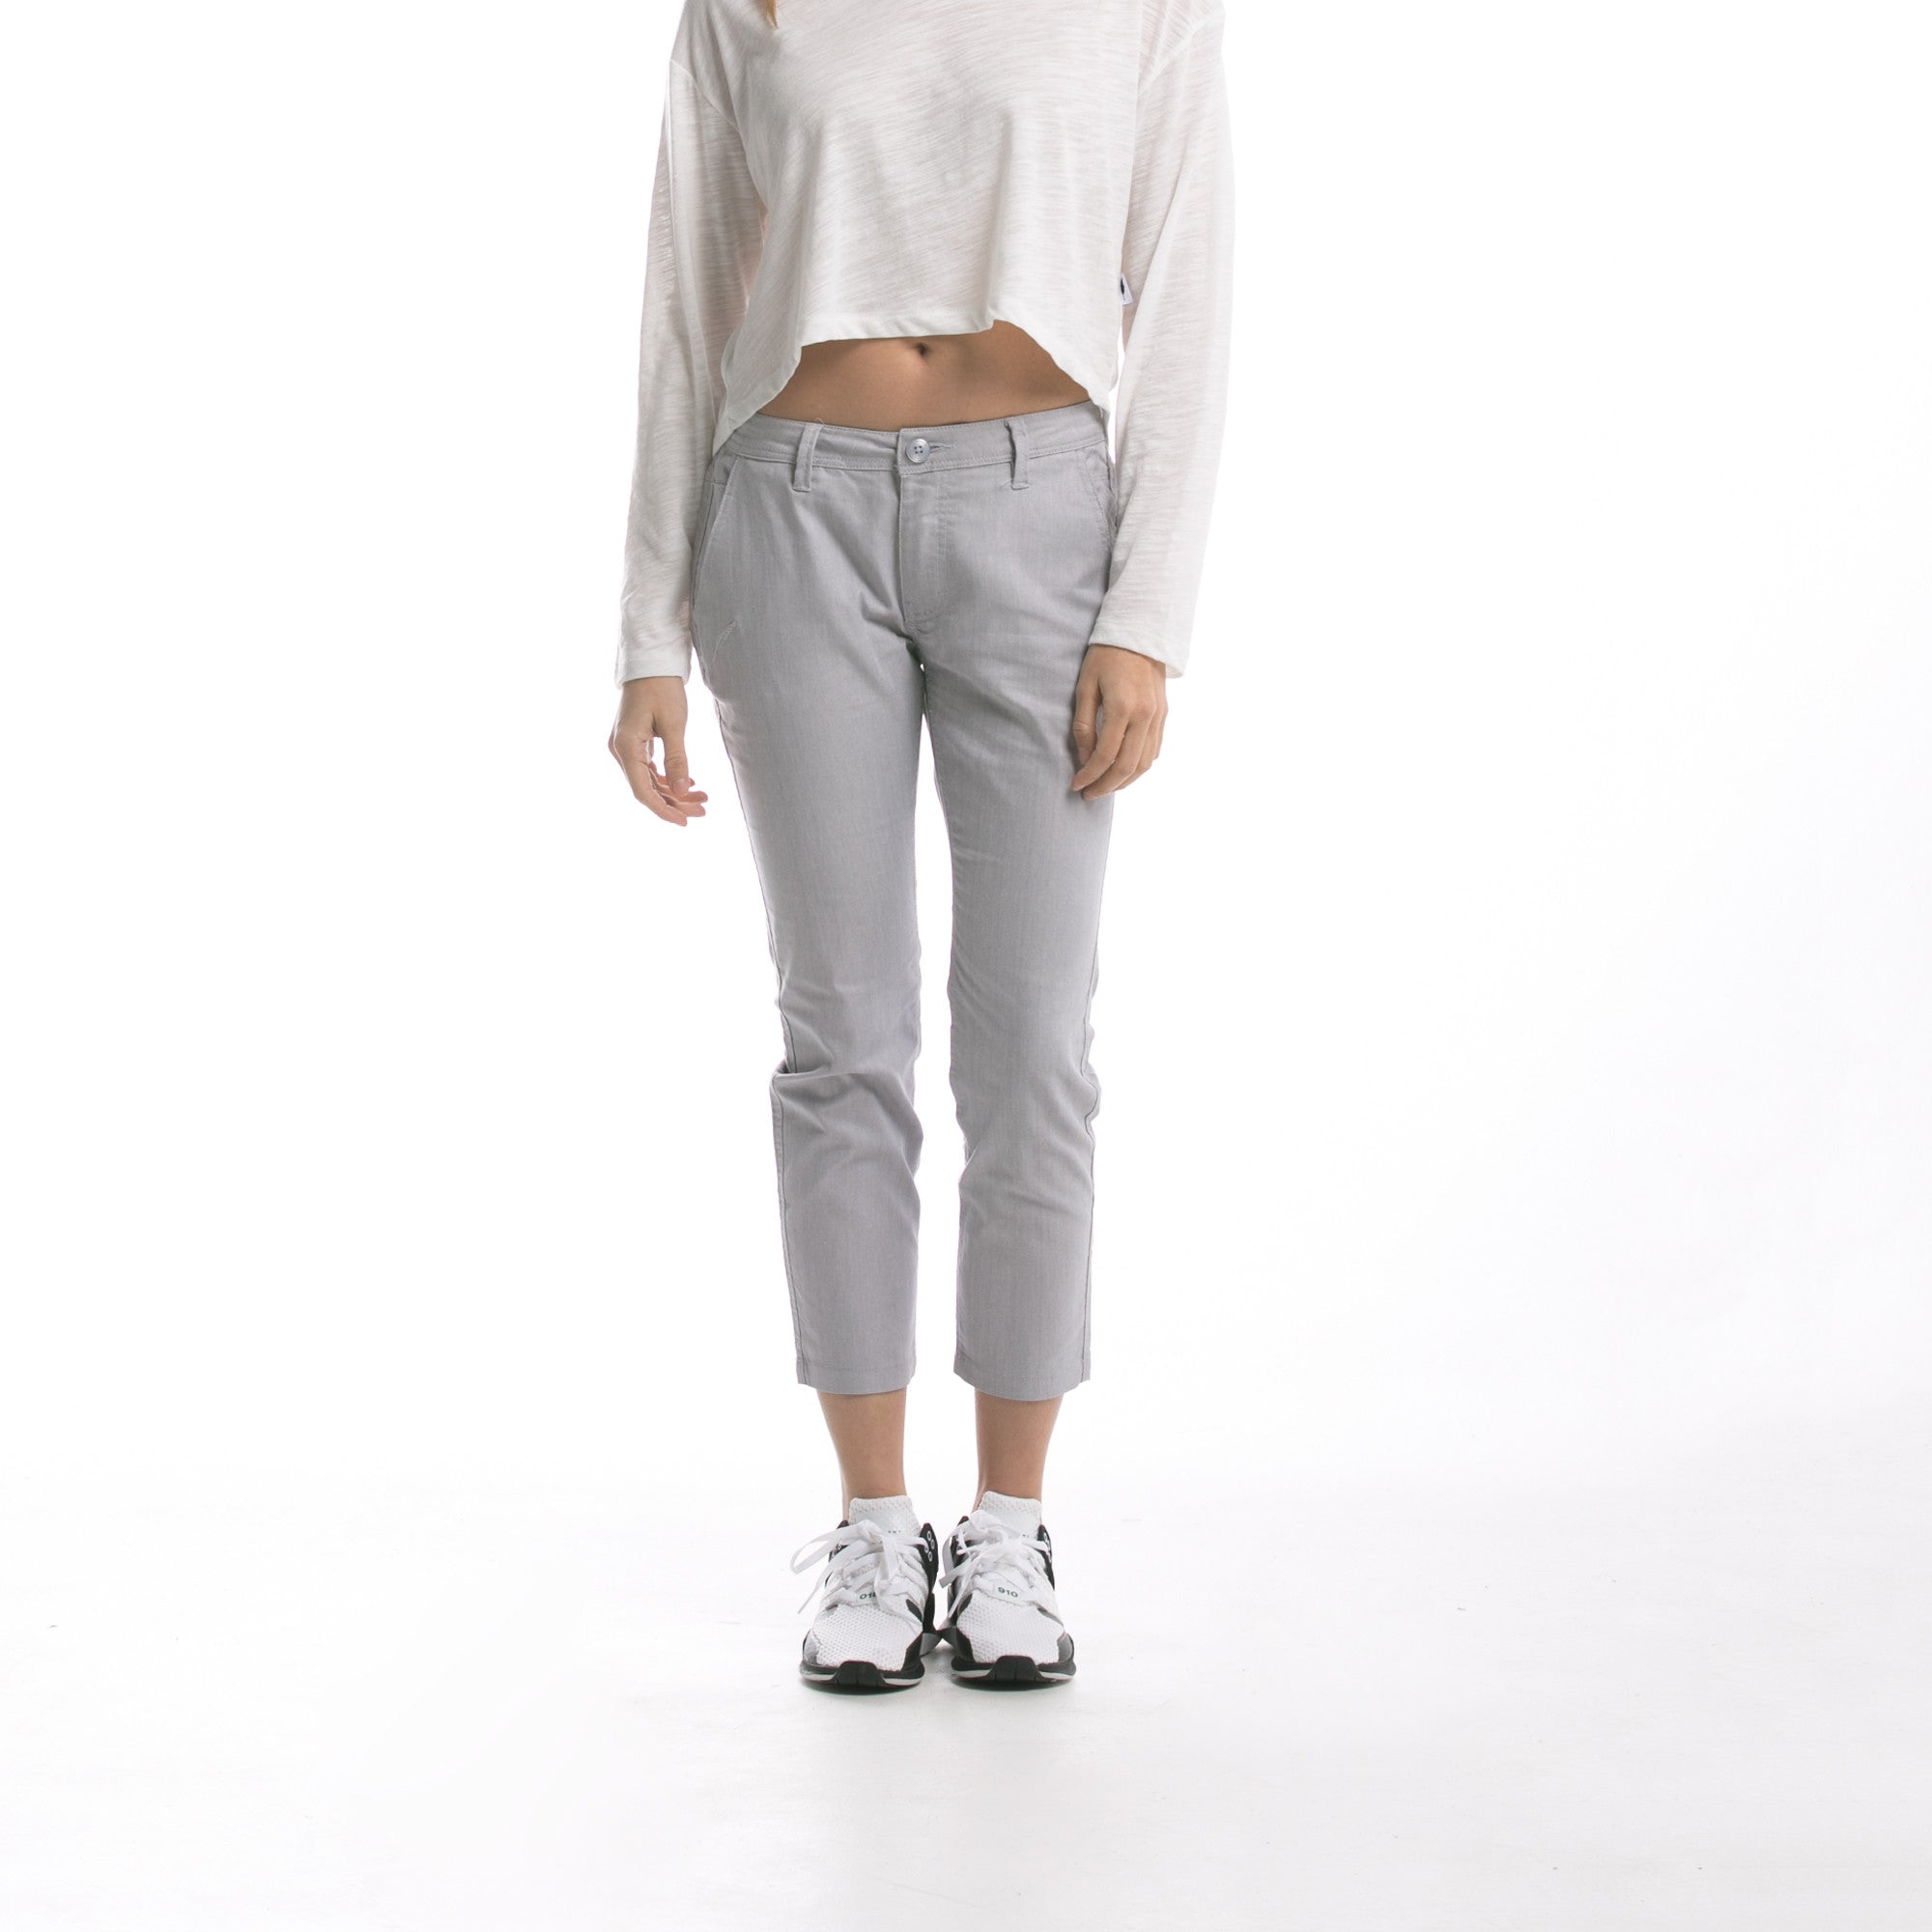 Sonia - Cropped Pant - Light Grey